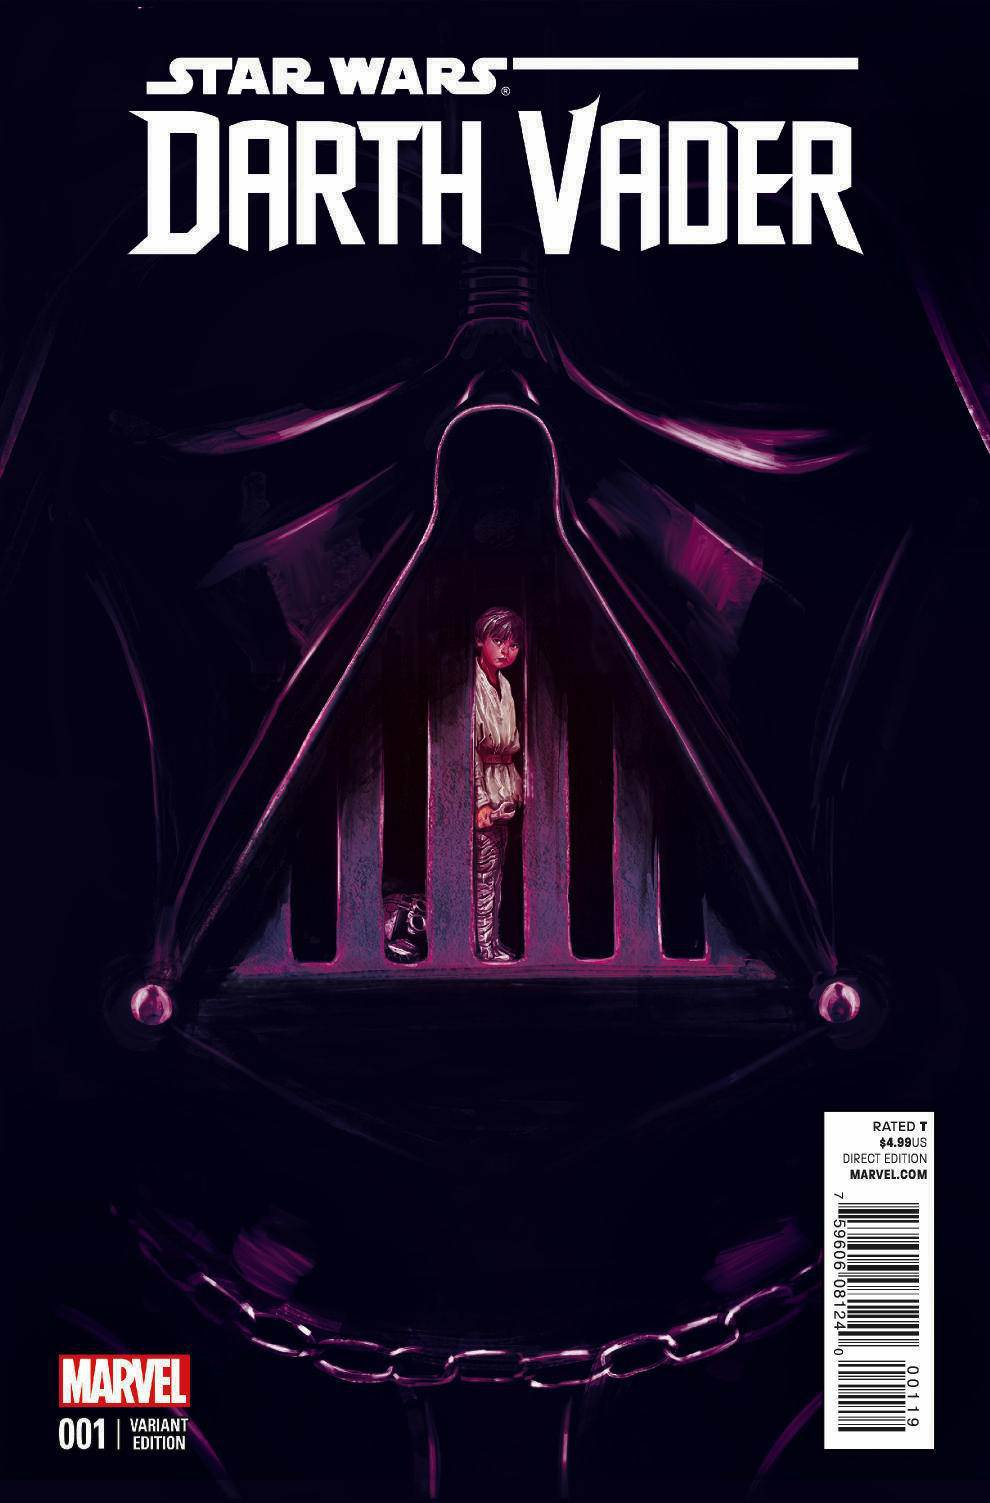 Check out Star Wars: Darth Vader #1 in our Star Wars Comics Round-Up!